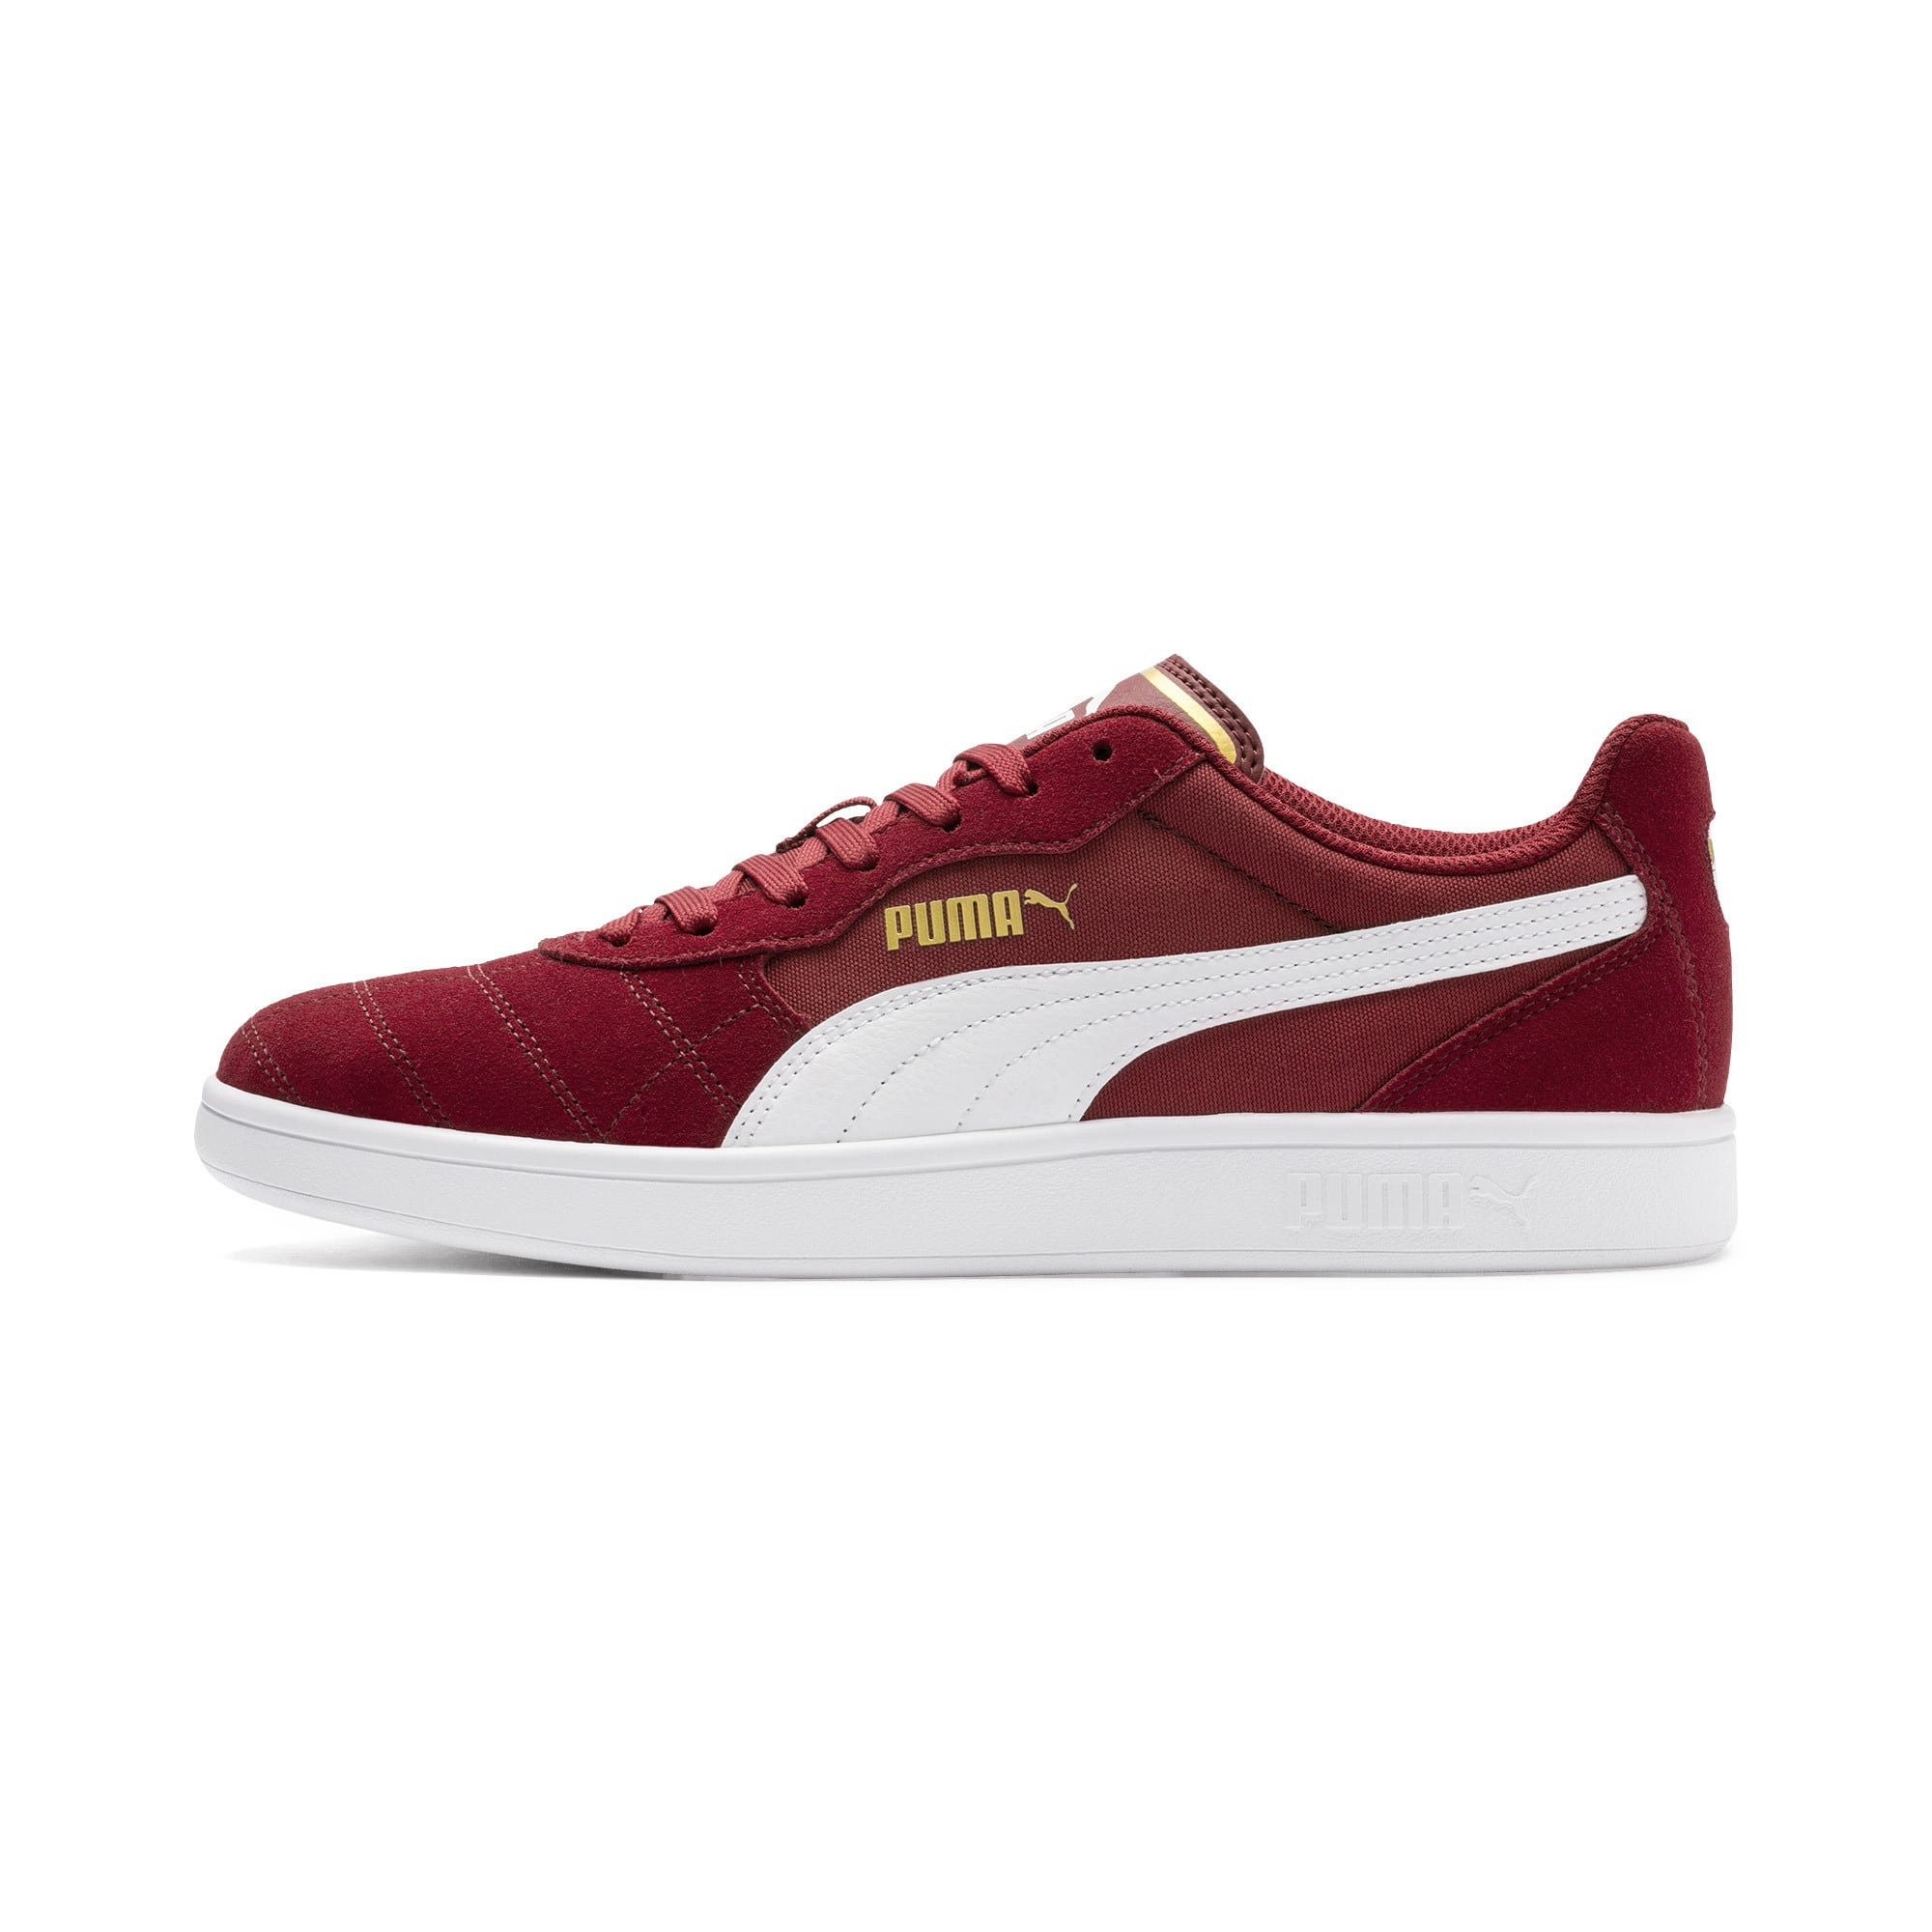 Astro Kick Sneakers, Rhubarb-Puma White-Gold, large